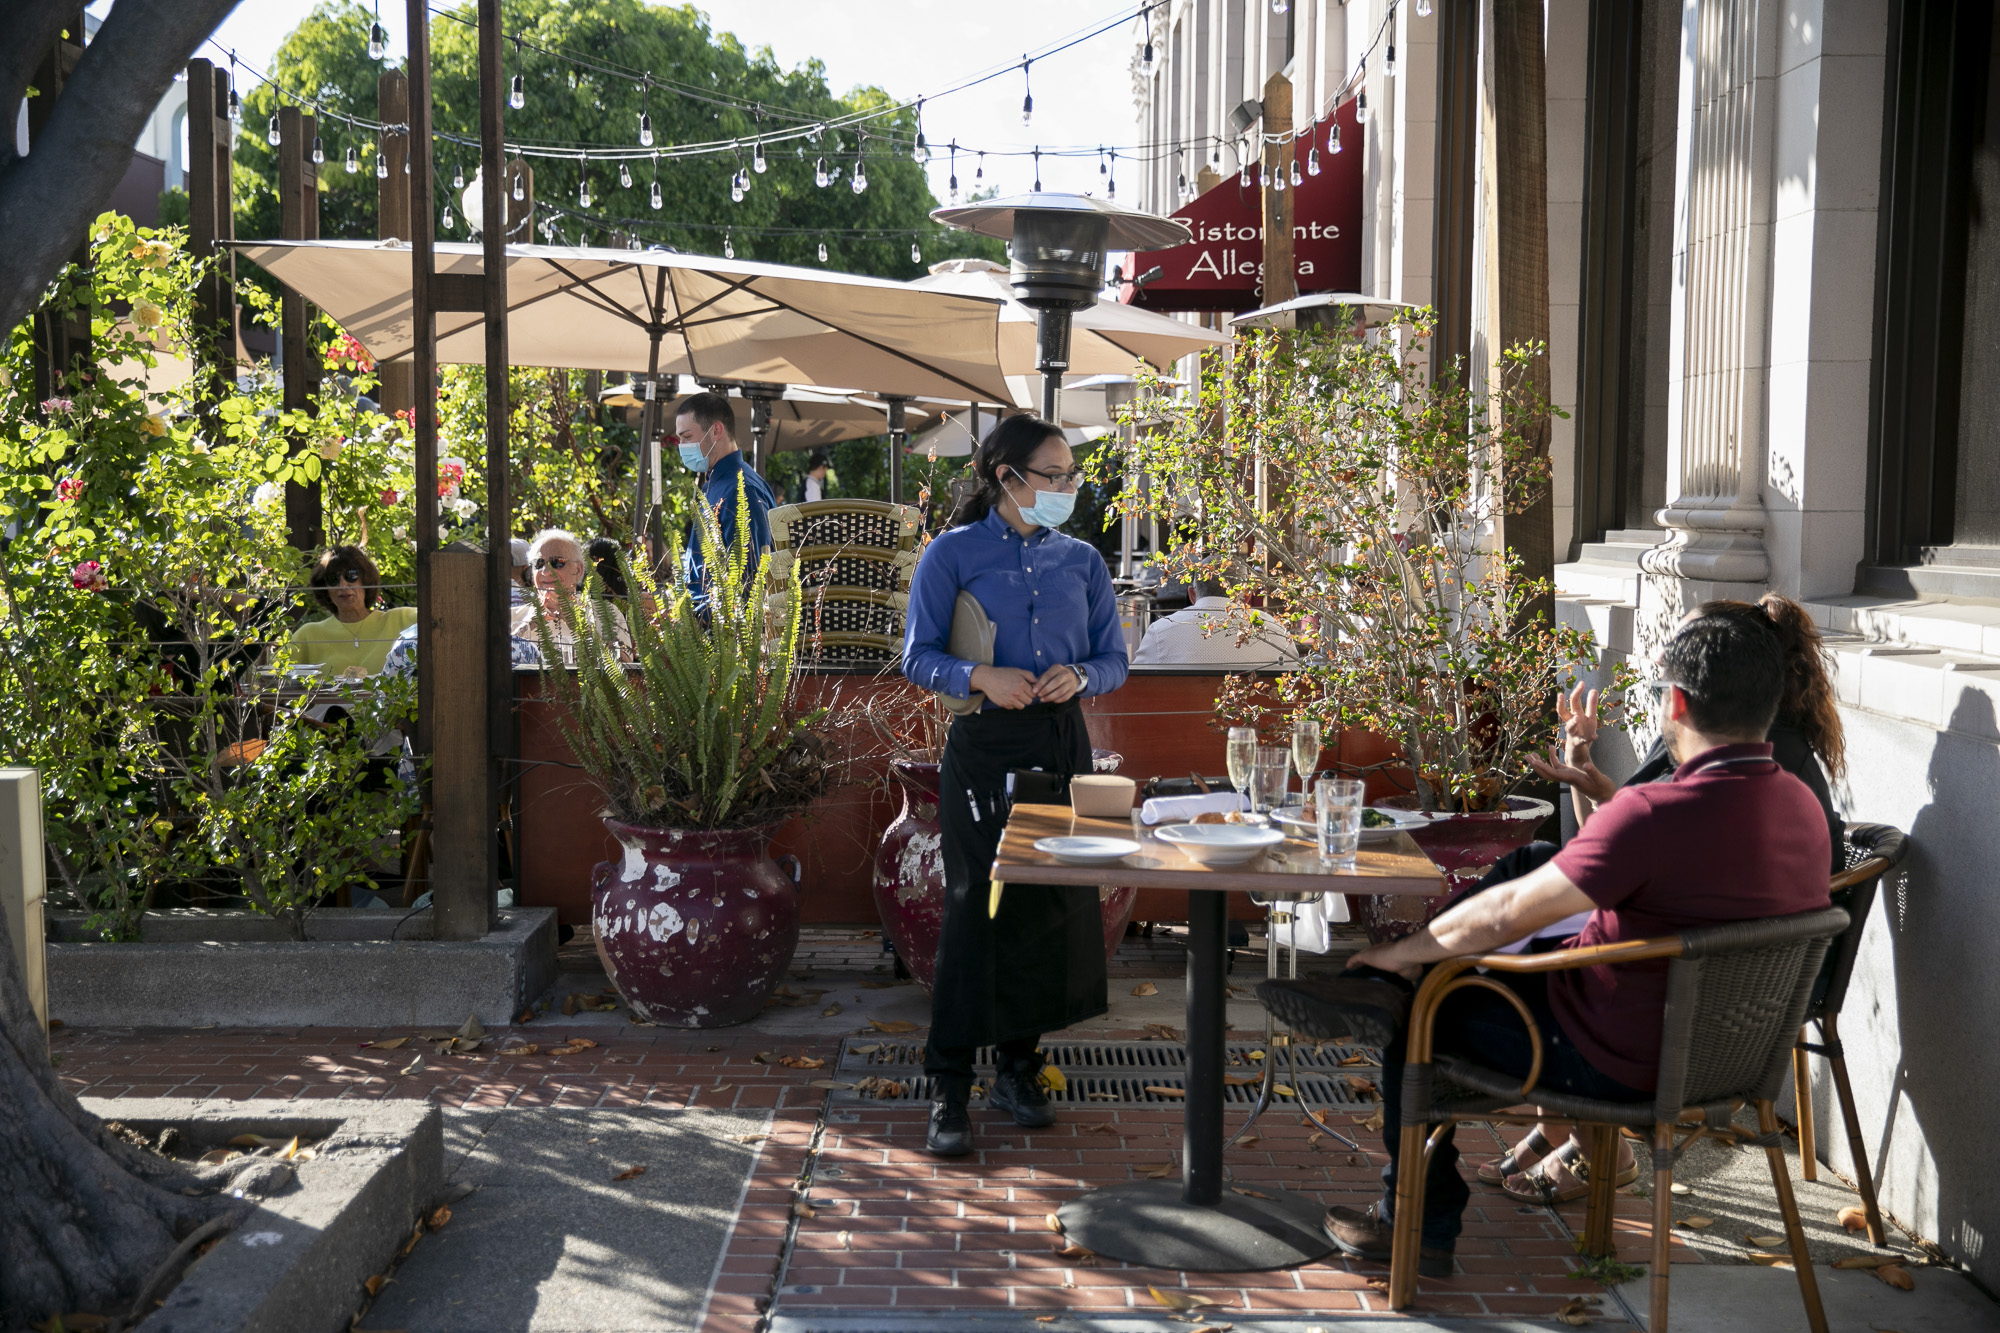 A masked server speaks with guests at Ristorante Allegria in Downtown Napa on May 22, 2020. The bustling restaurant has been busy since reopening their dining room and patio earlier this week. Photo by Anne Wernikoff for CalMatters